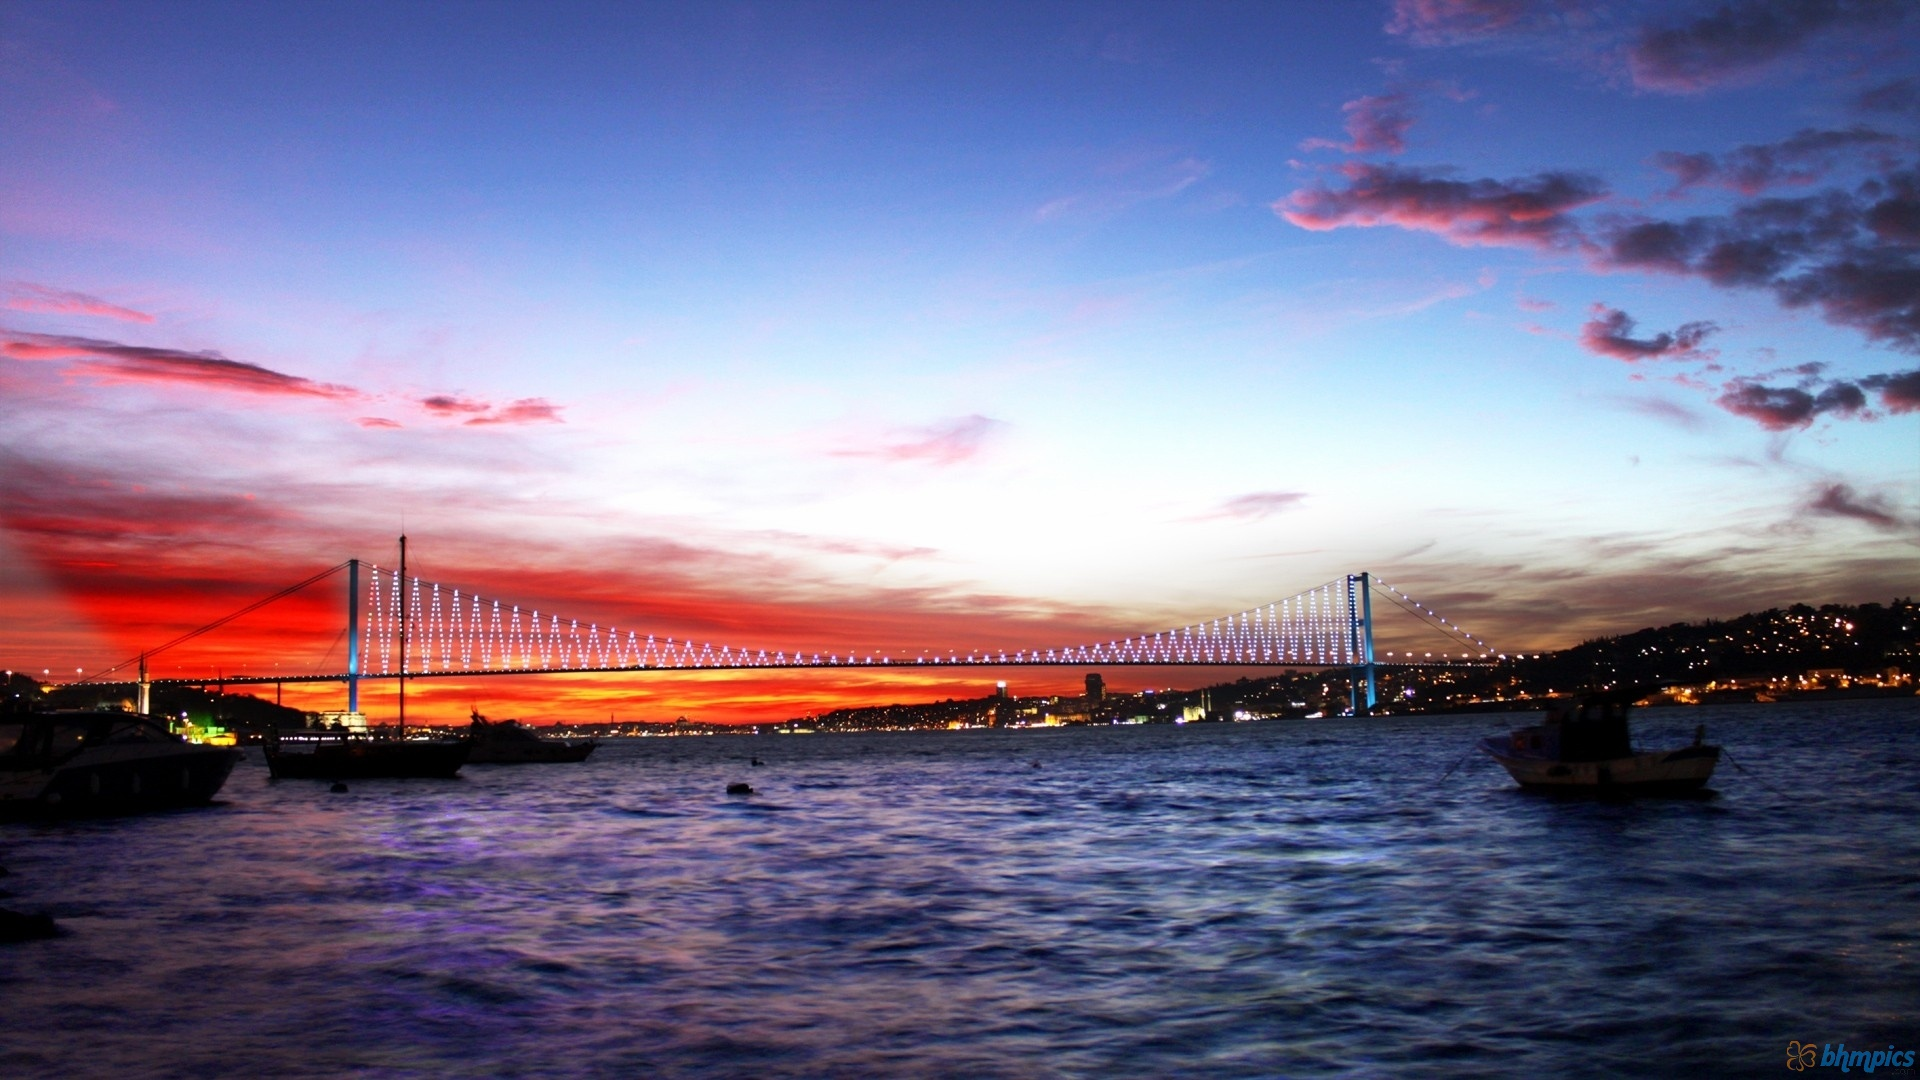 bosphorus-evening-cruise-experience in Istanbul